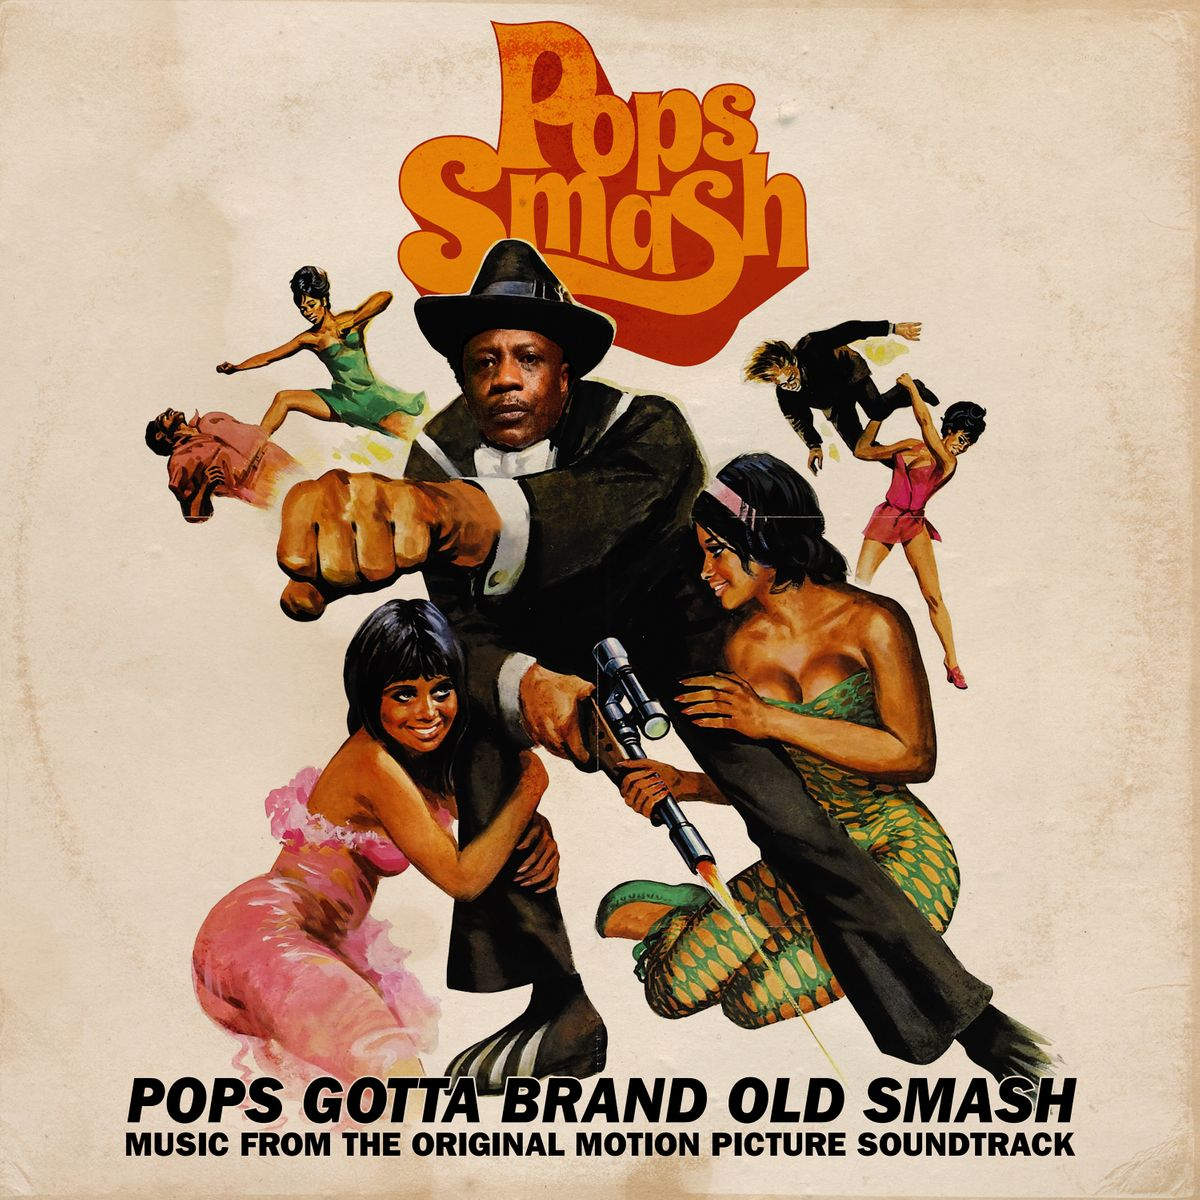 Pops Smash - Pops Gotta Brand Old Smash (Music From The Original Motion Picture Soundtrack)